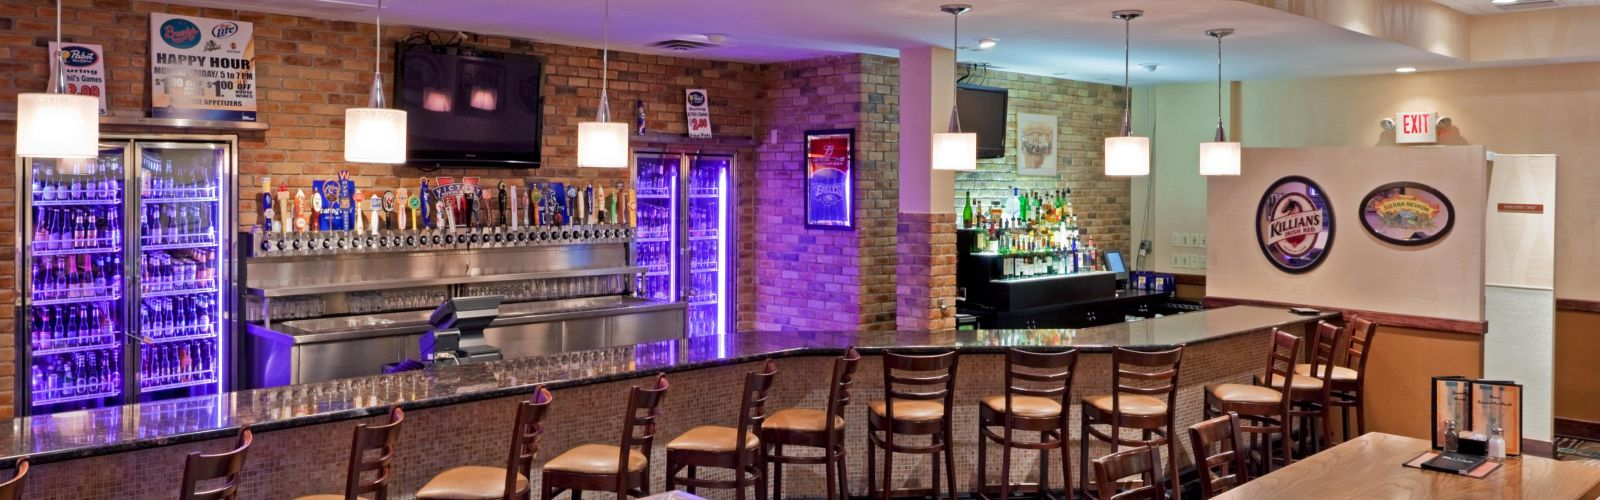 Bar and lounge photo